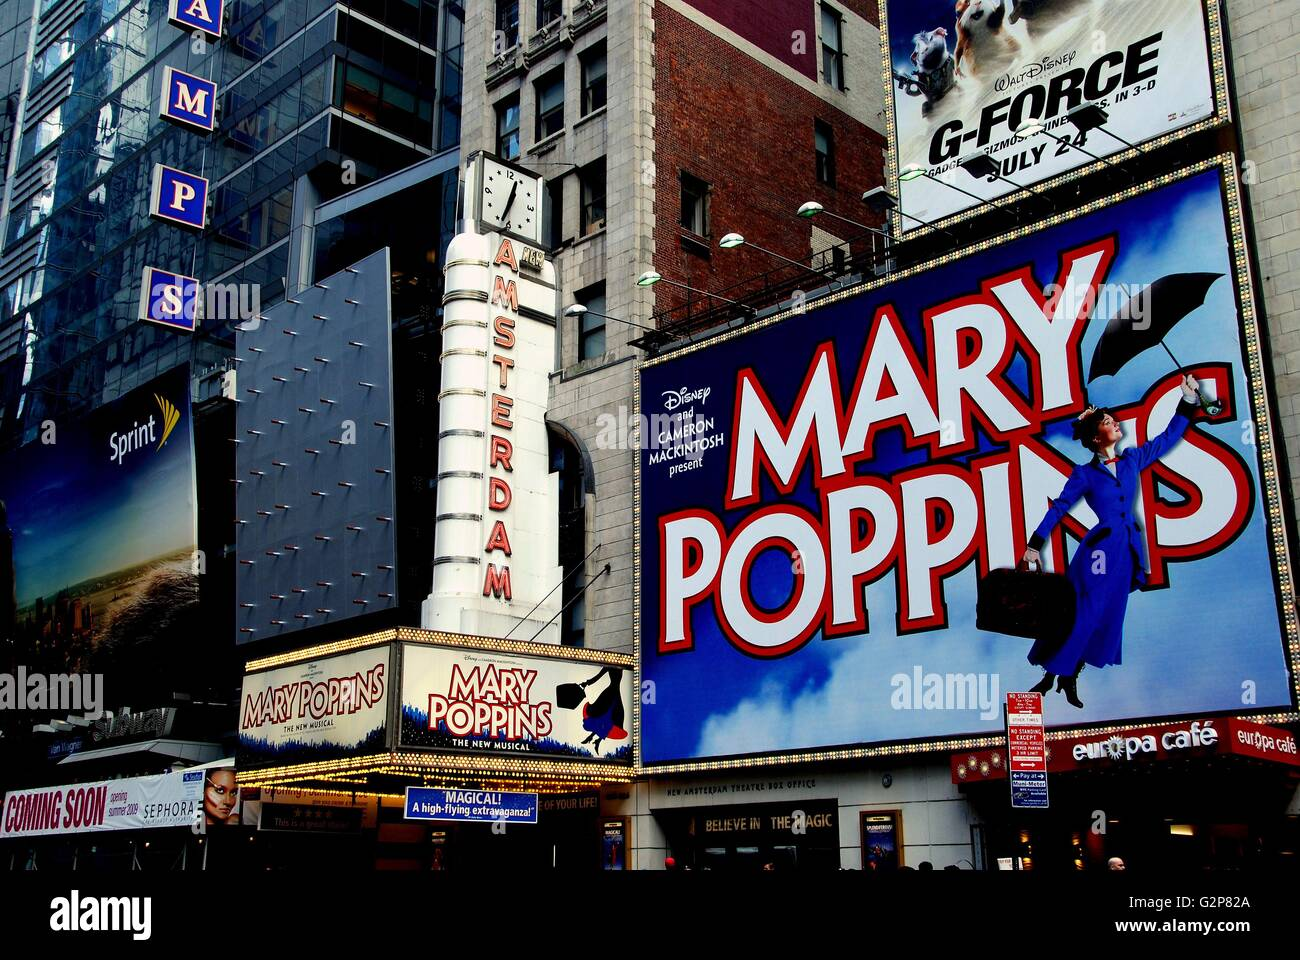 New York City The legendary New Amsterdam Theatre on West 42nd Street, home to the Broadway musical 'Mary Poppins' - Stock Image